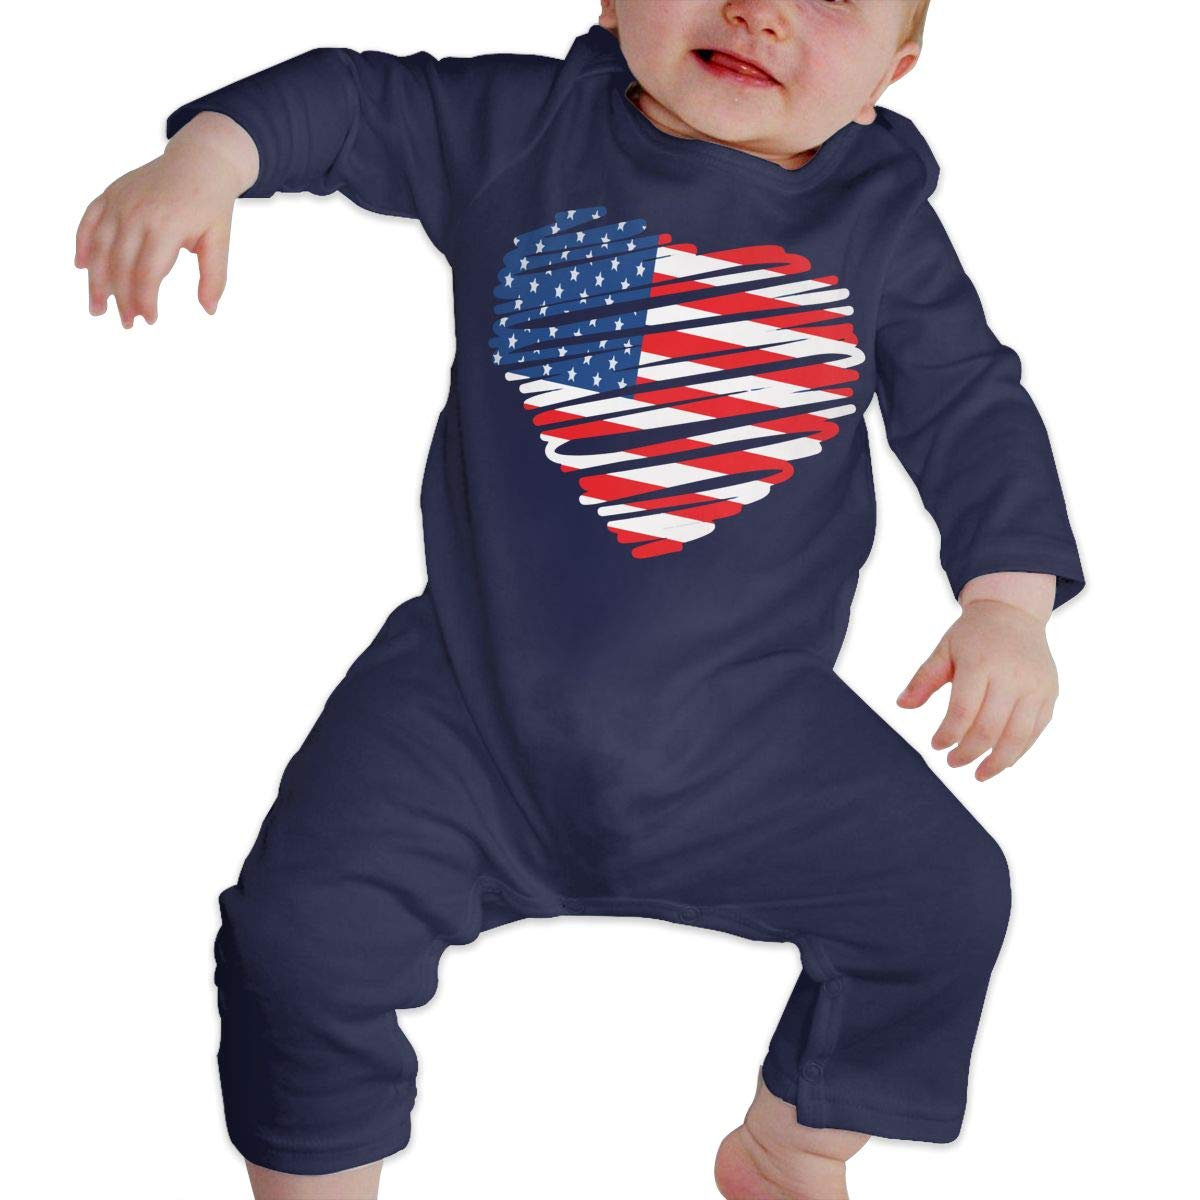 Db84UR@5p Infant Baby Girls Boys Long Sleeve Bodysuit Comfortable American Flag Heart Cotton Romper Outfit